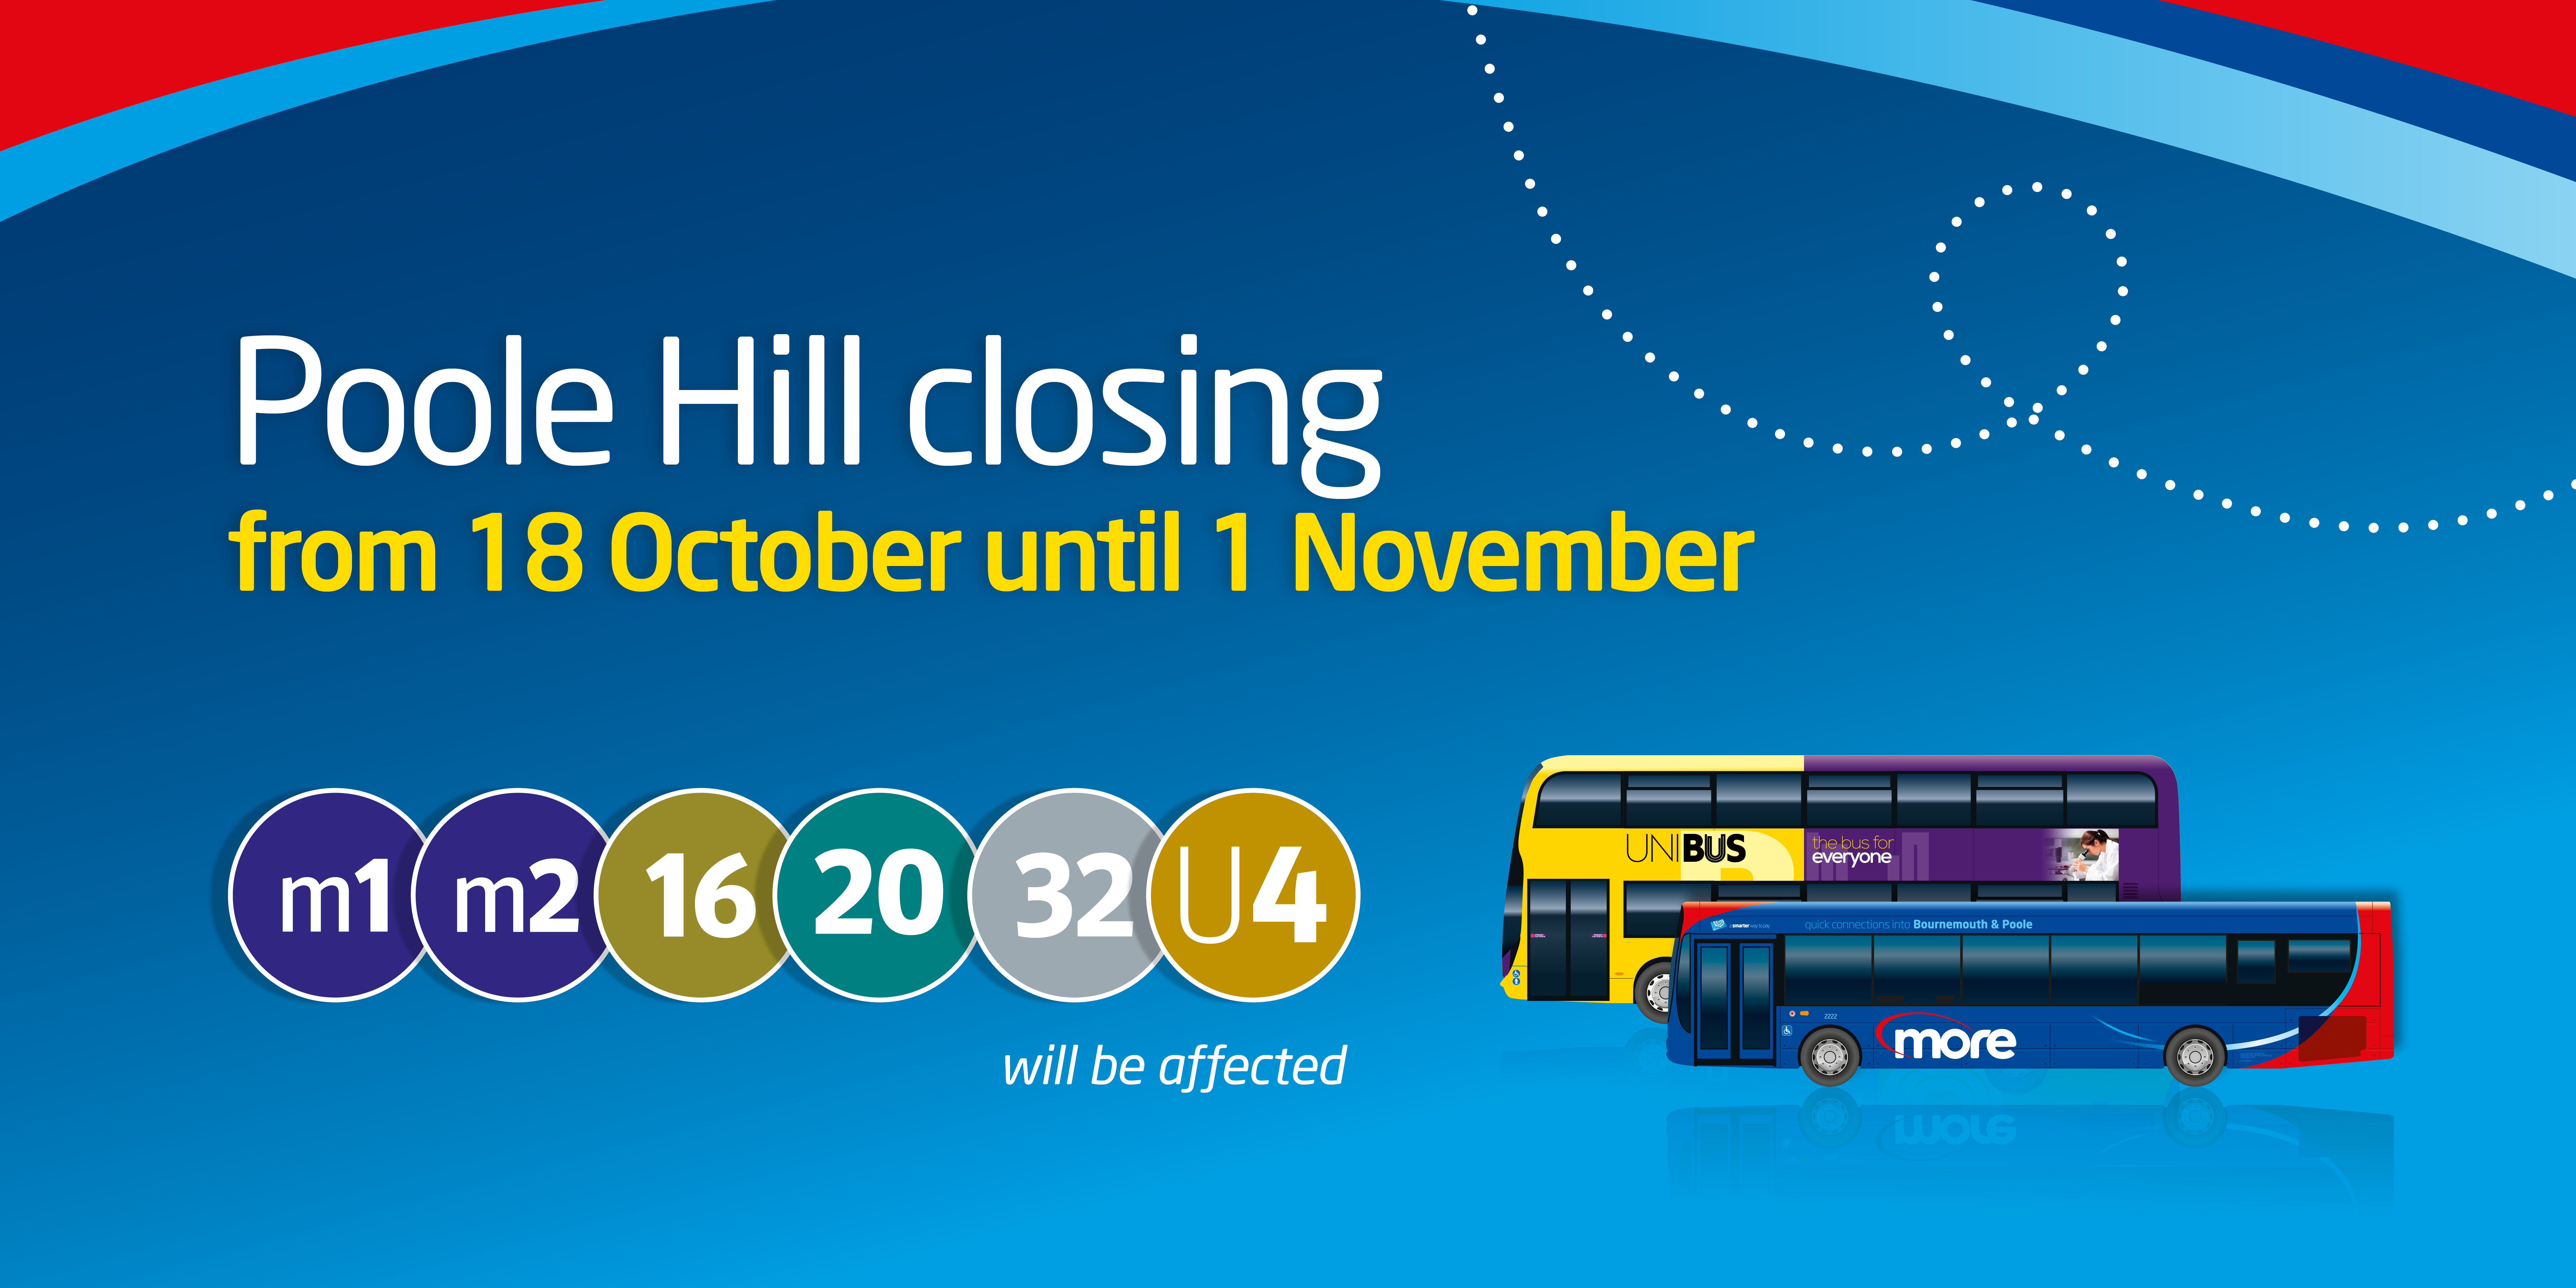 poole hill closure from 18th october until 1st november